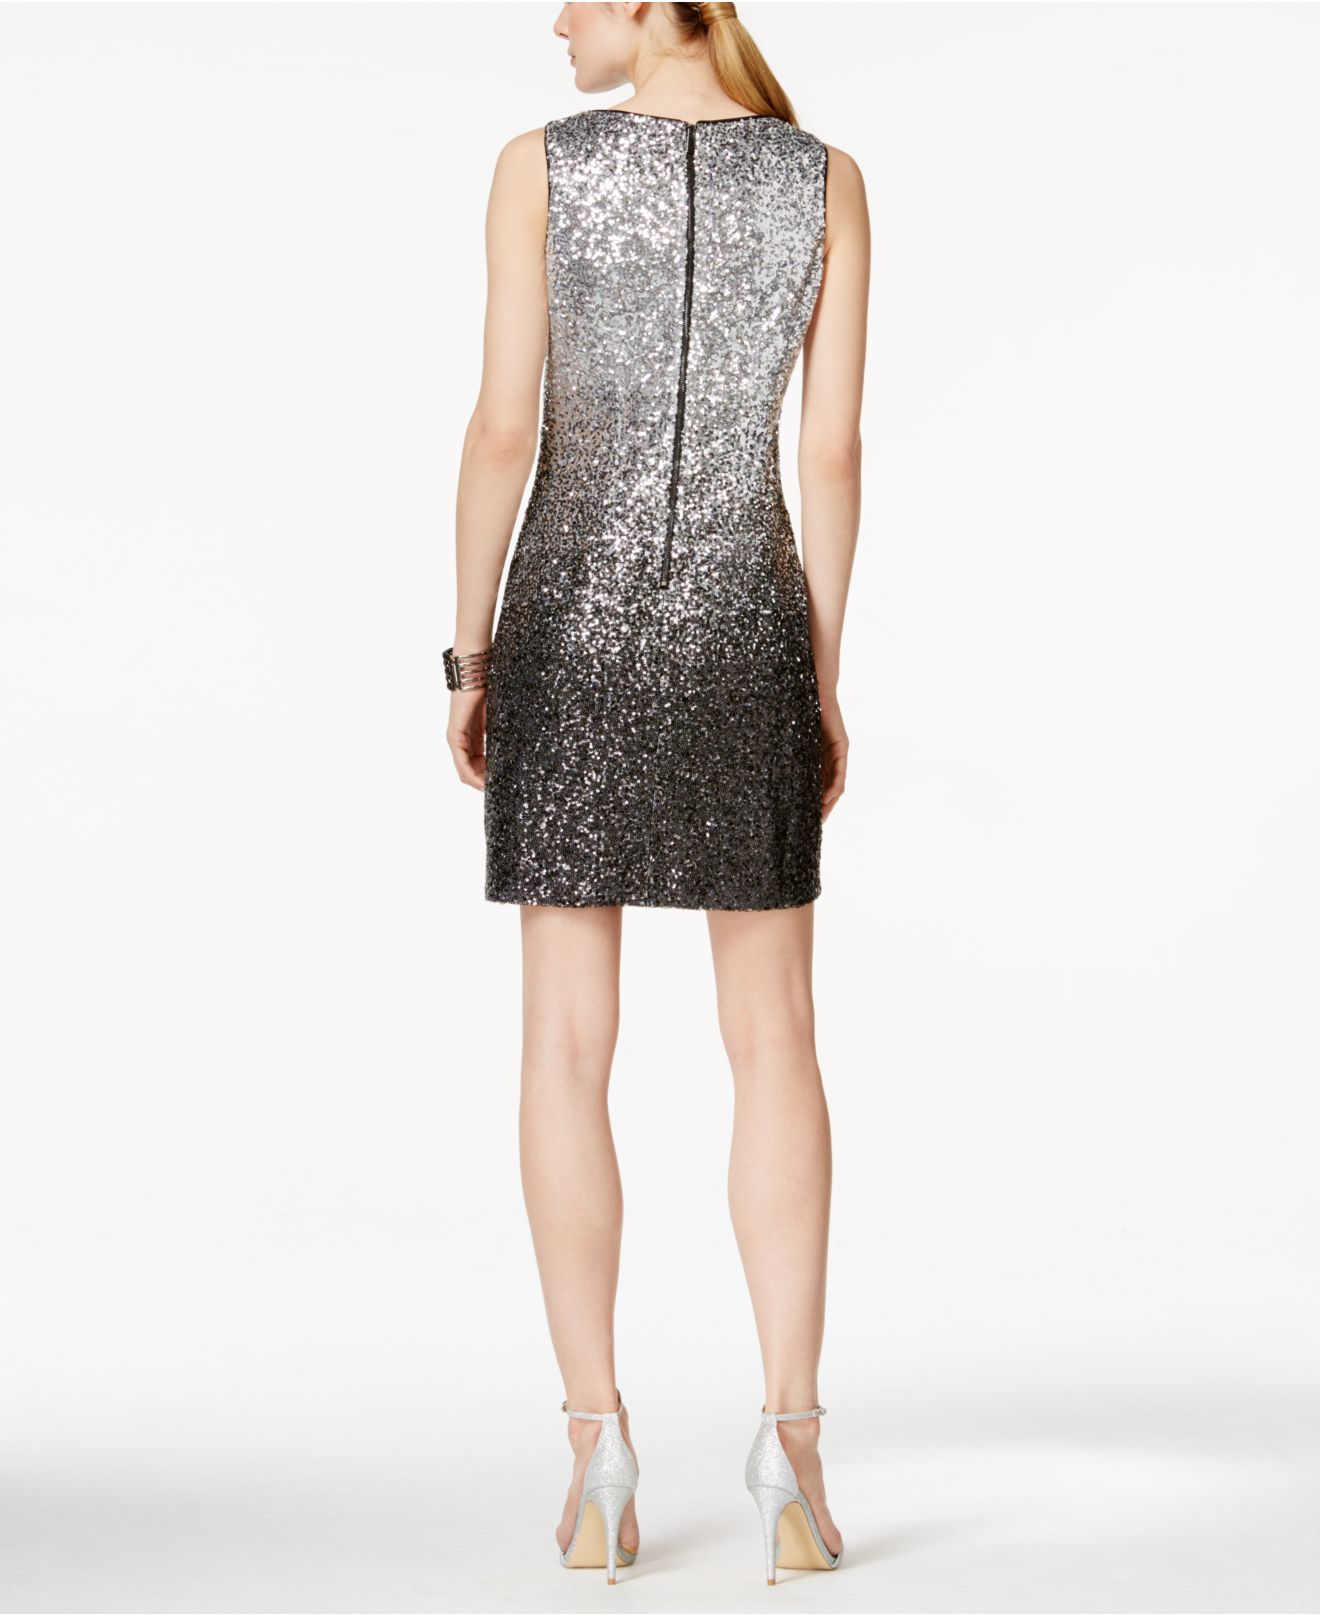 f775e17a Vince Camuto Sequined Ombré Sheath Dress in Metallic - Lyst